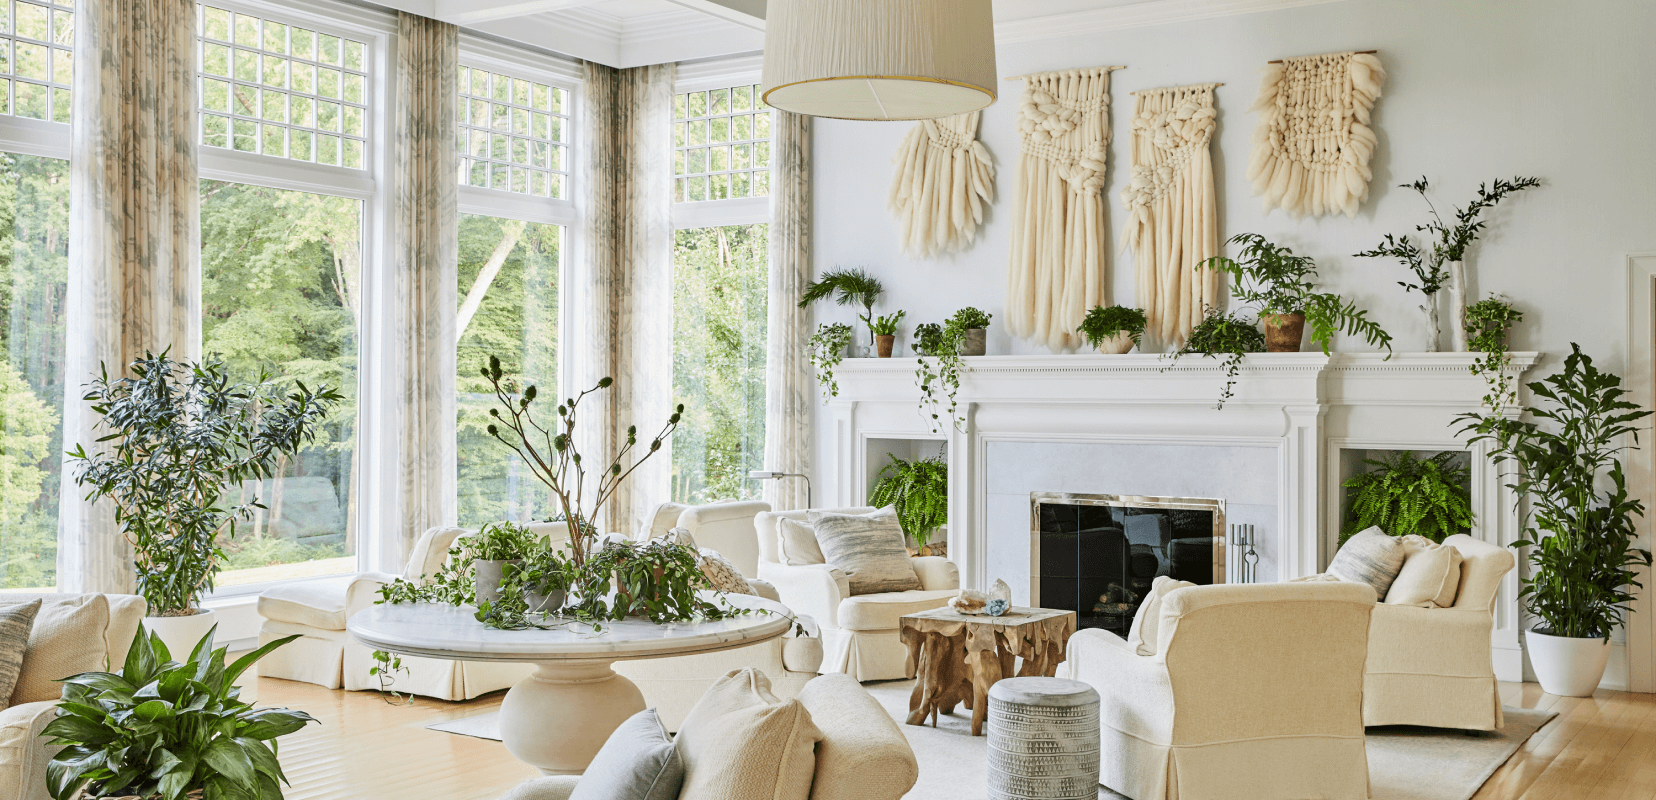 lovely country   interior